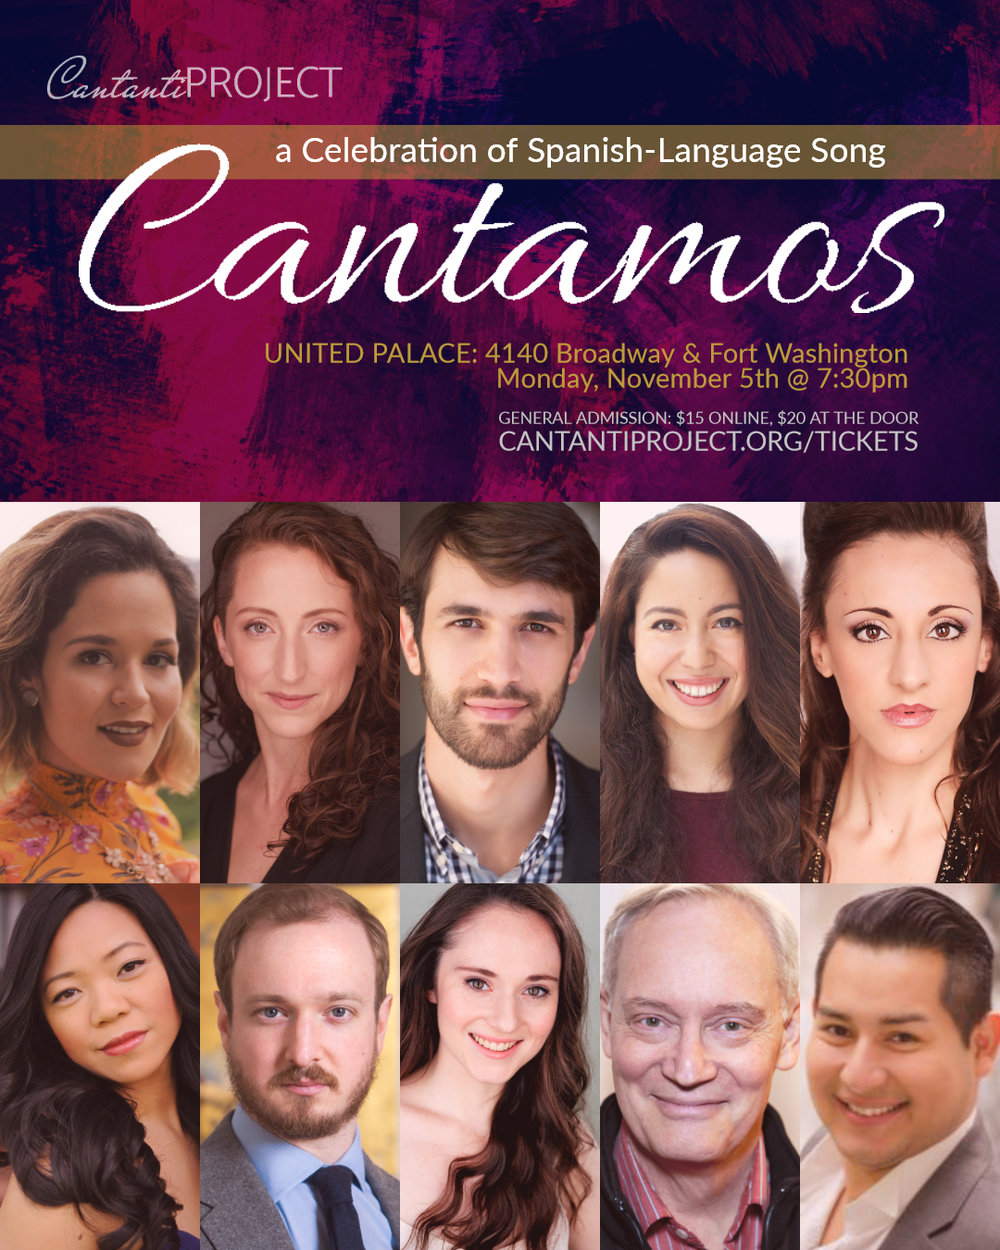 Cantamos Cast Portrait with name.jpg